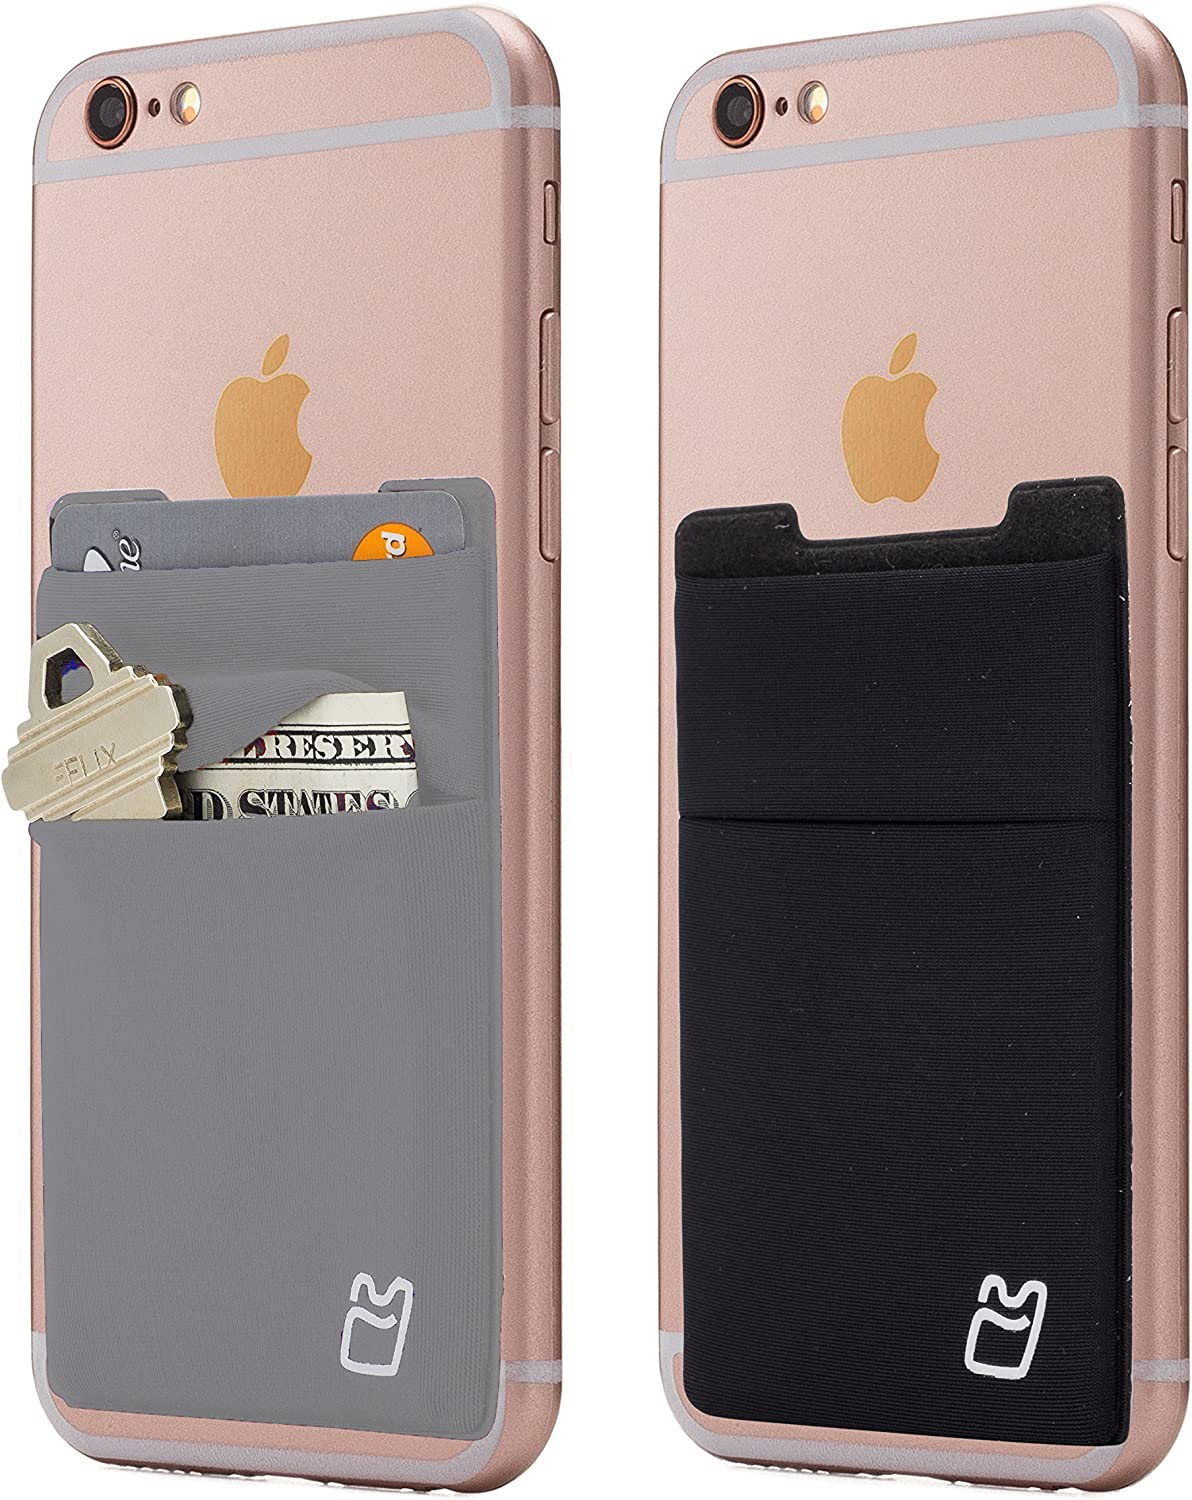 (Two) Stretchy Cell Phone Stick on Wallet Card Holder Phone Pocket for iPhone, Android and All Smartphones. (Grey&Black)